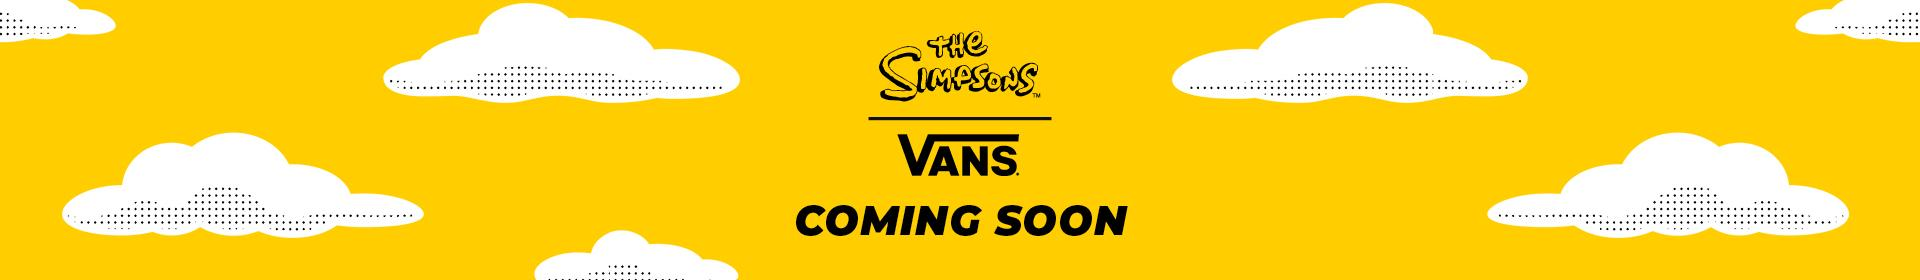 The Simpsons x Vans Collection is Coming Soon